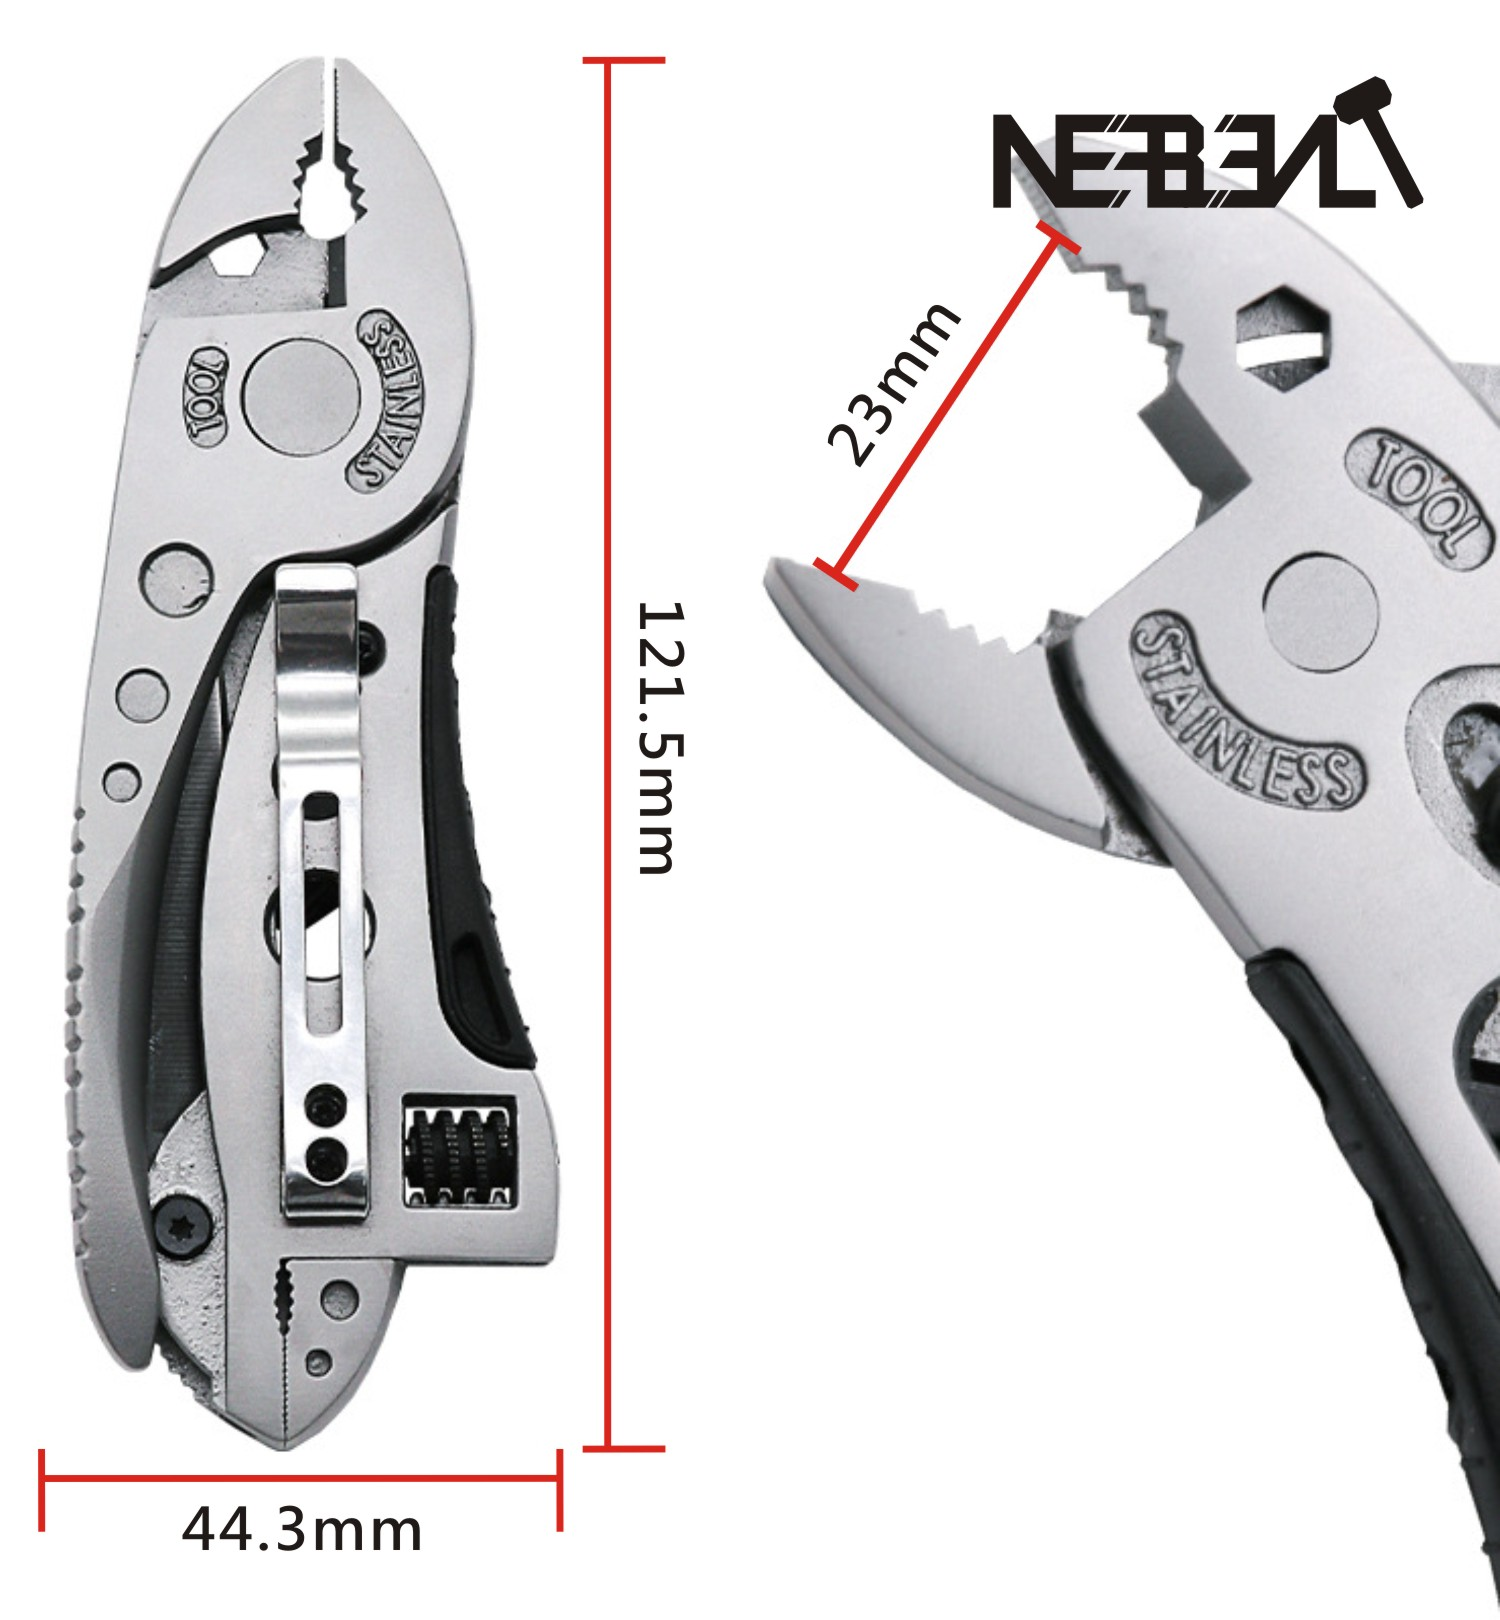 Outdoor Multitool Pliers Pocket Knife Screwdriver Set Kit Adjustable Wrench Jaw Spanner Mini Repair Hand Tools Pocket Portable